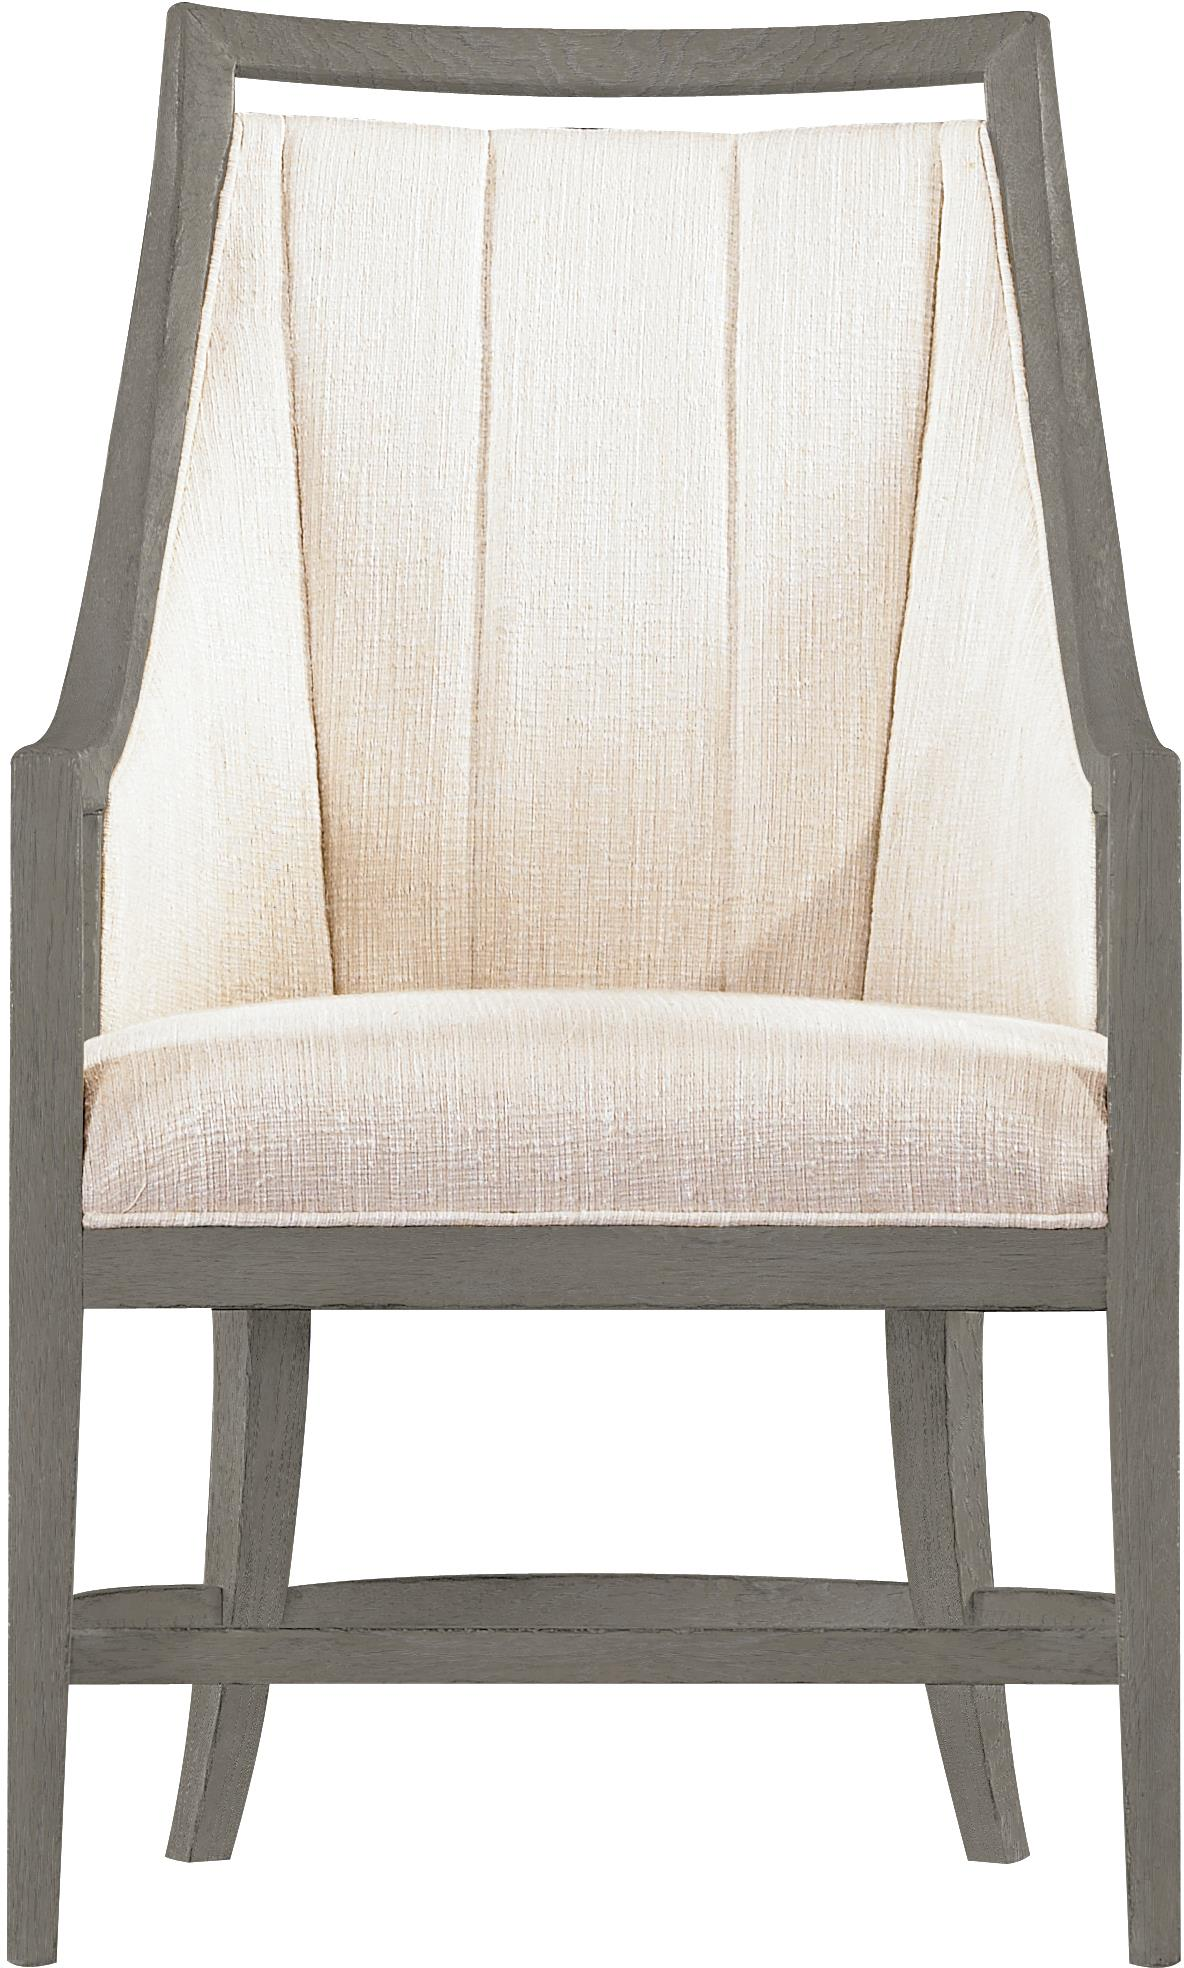 Stanley Furniture Coastal Living Resort By the Bay Host Chair - Item Number: 062-C1-75